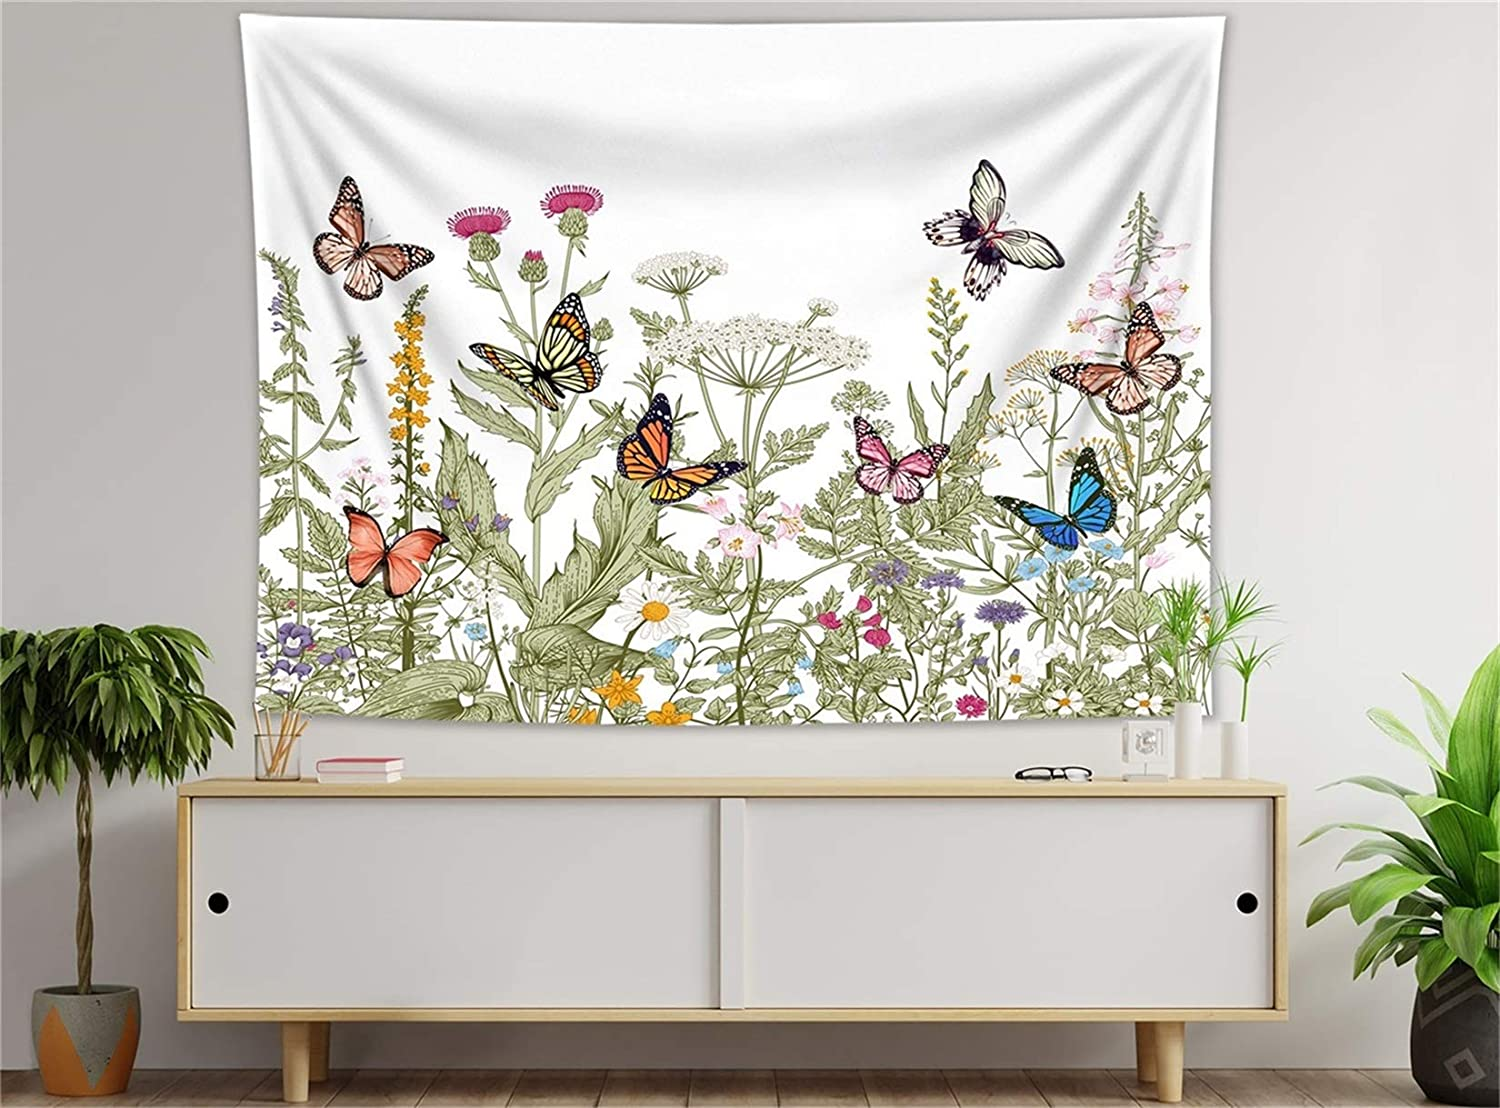 HVEST Colorful Floral Butterfly Tapestry Wall Hanging Retro Herbs and Daisy Teal Flower Tapestries Vintage Butterflies Nature Scenery Tapestry for Bedroom Living Room Indie Decor,59X51 Inches